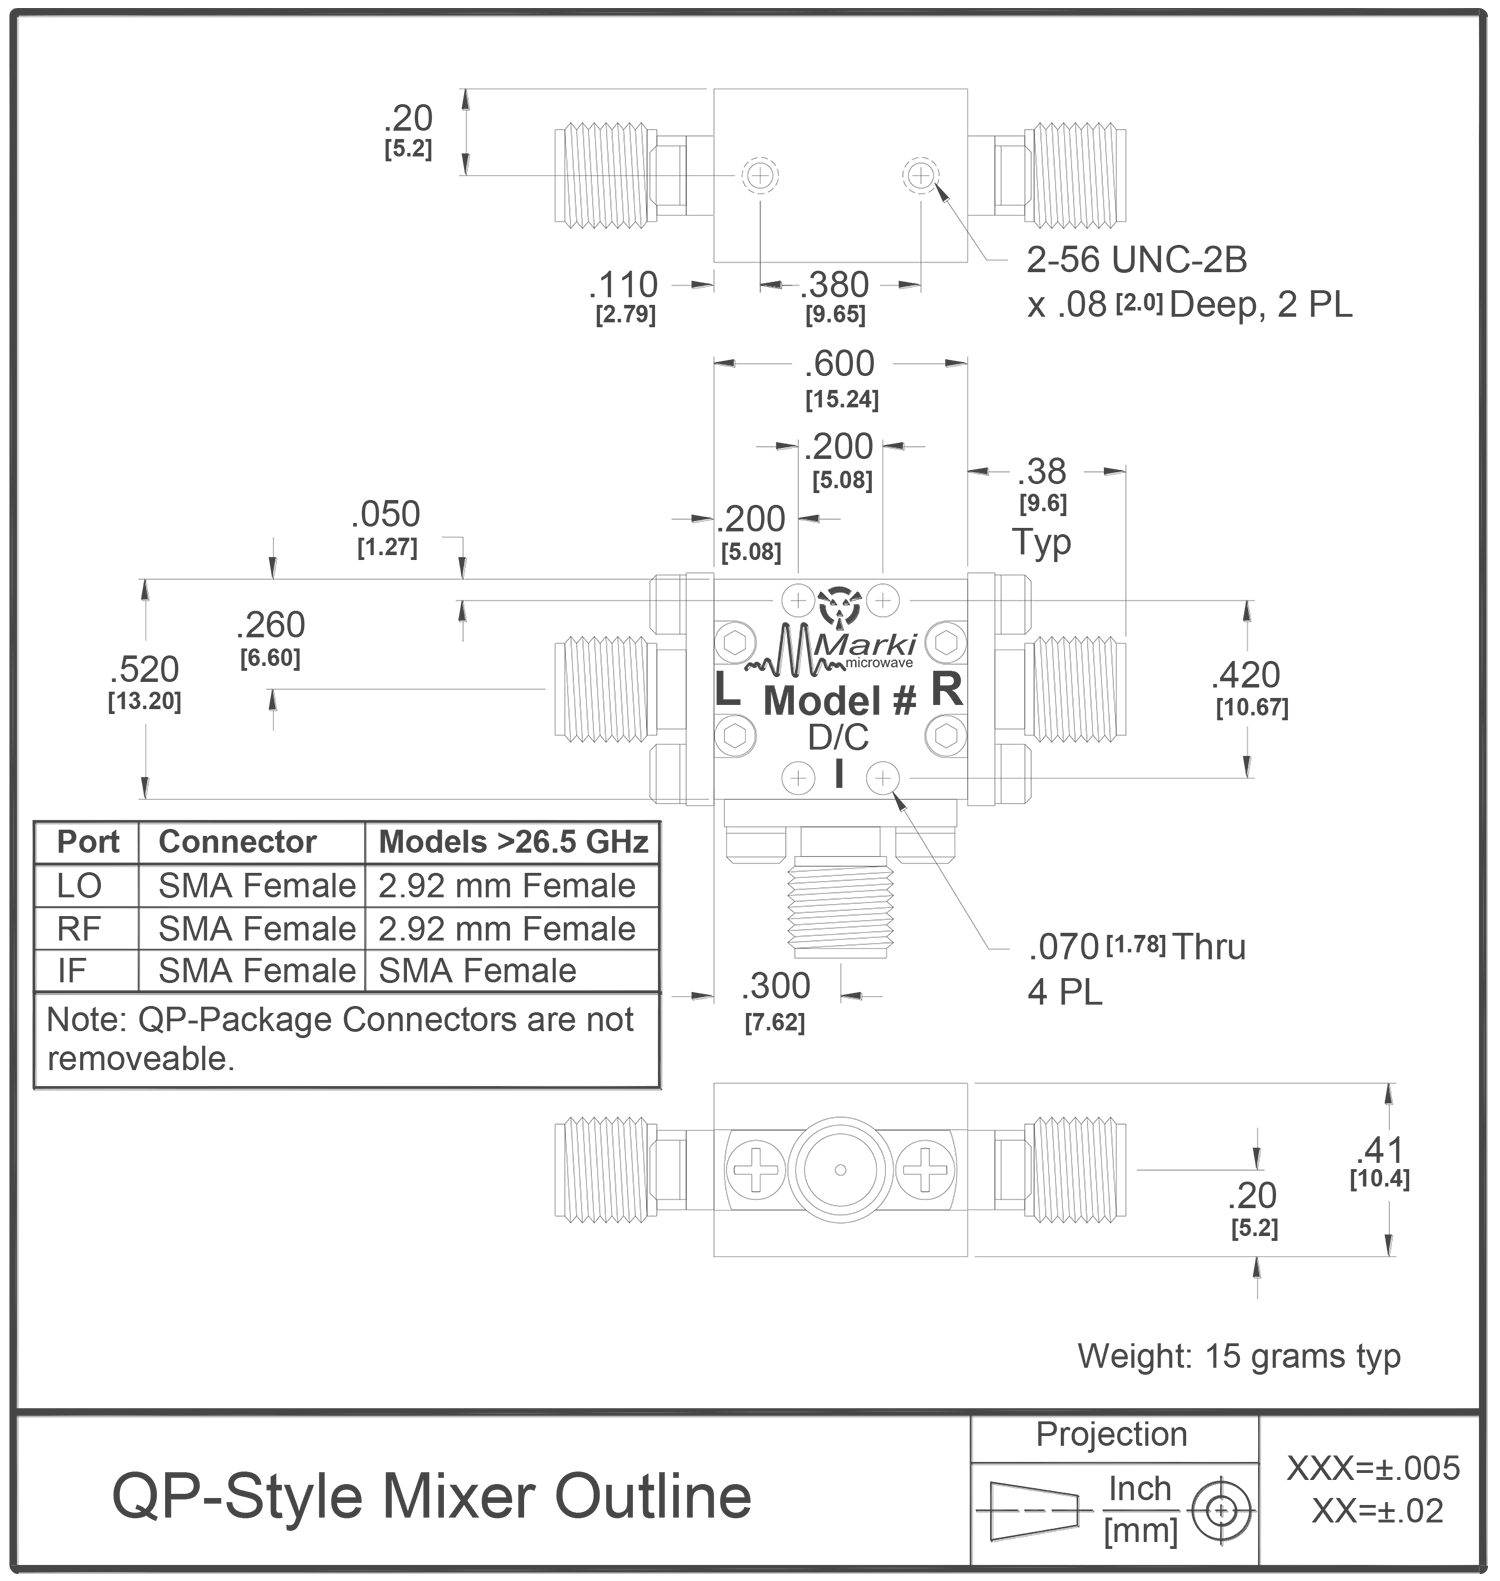 M1-0012 Mixer Package Diagram